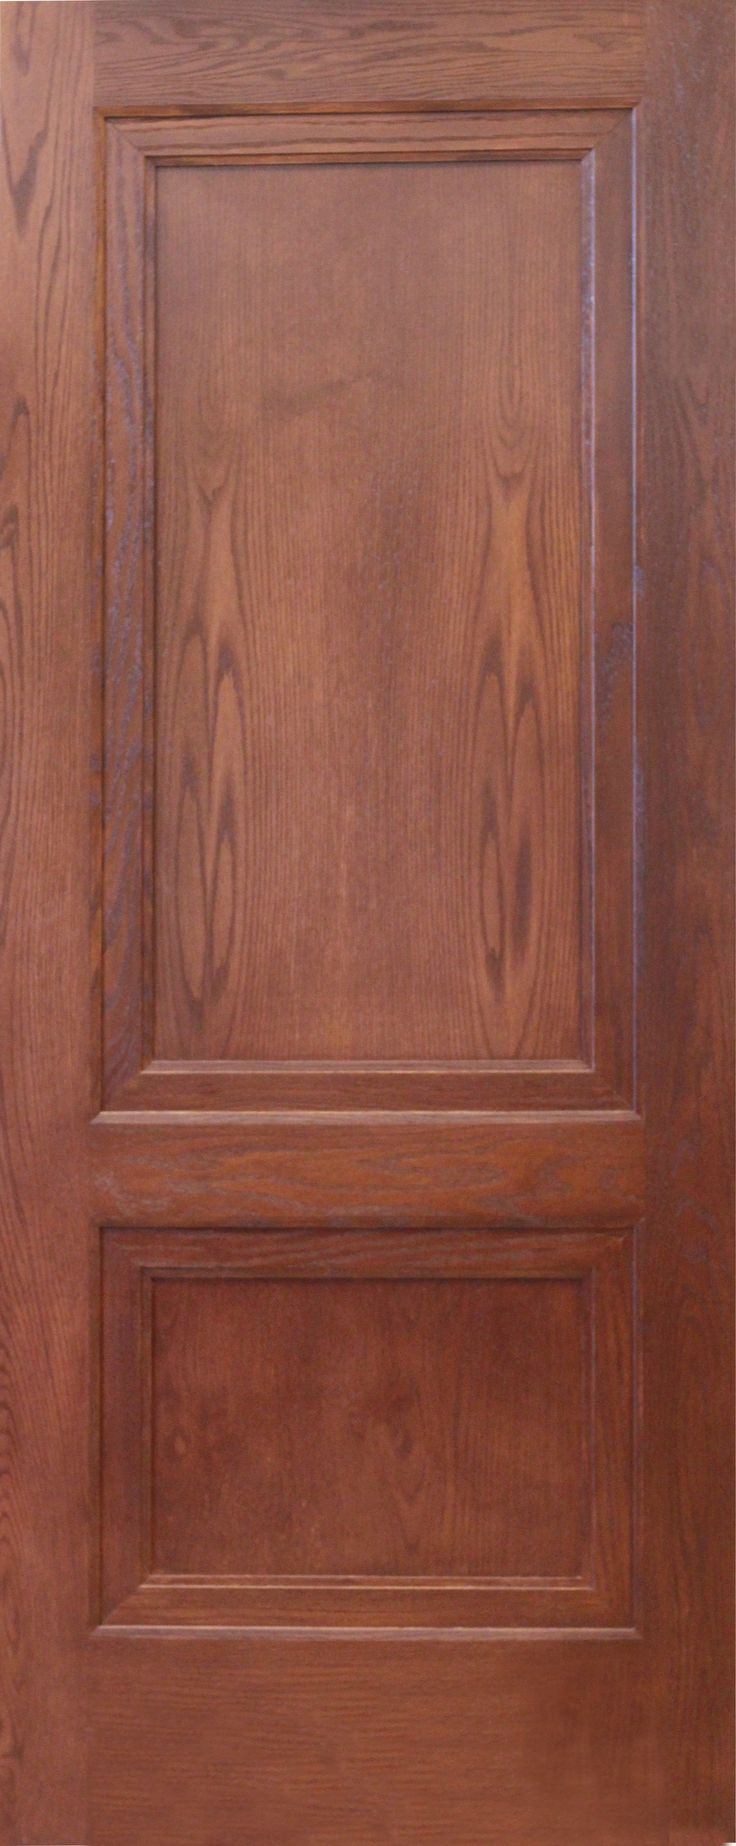 Rustic Wood Interior Doors 52 best badger interior doors & millwork images on pinterest